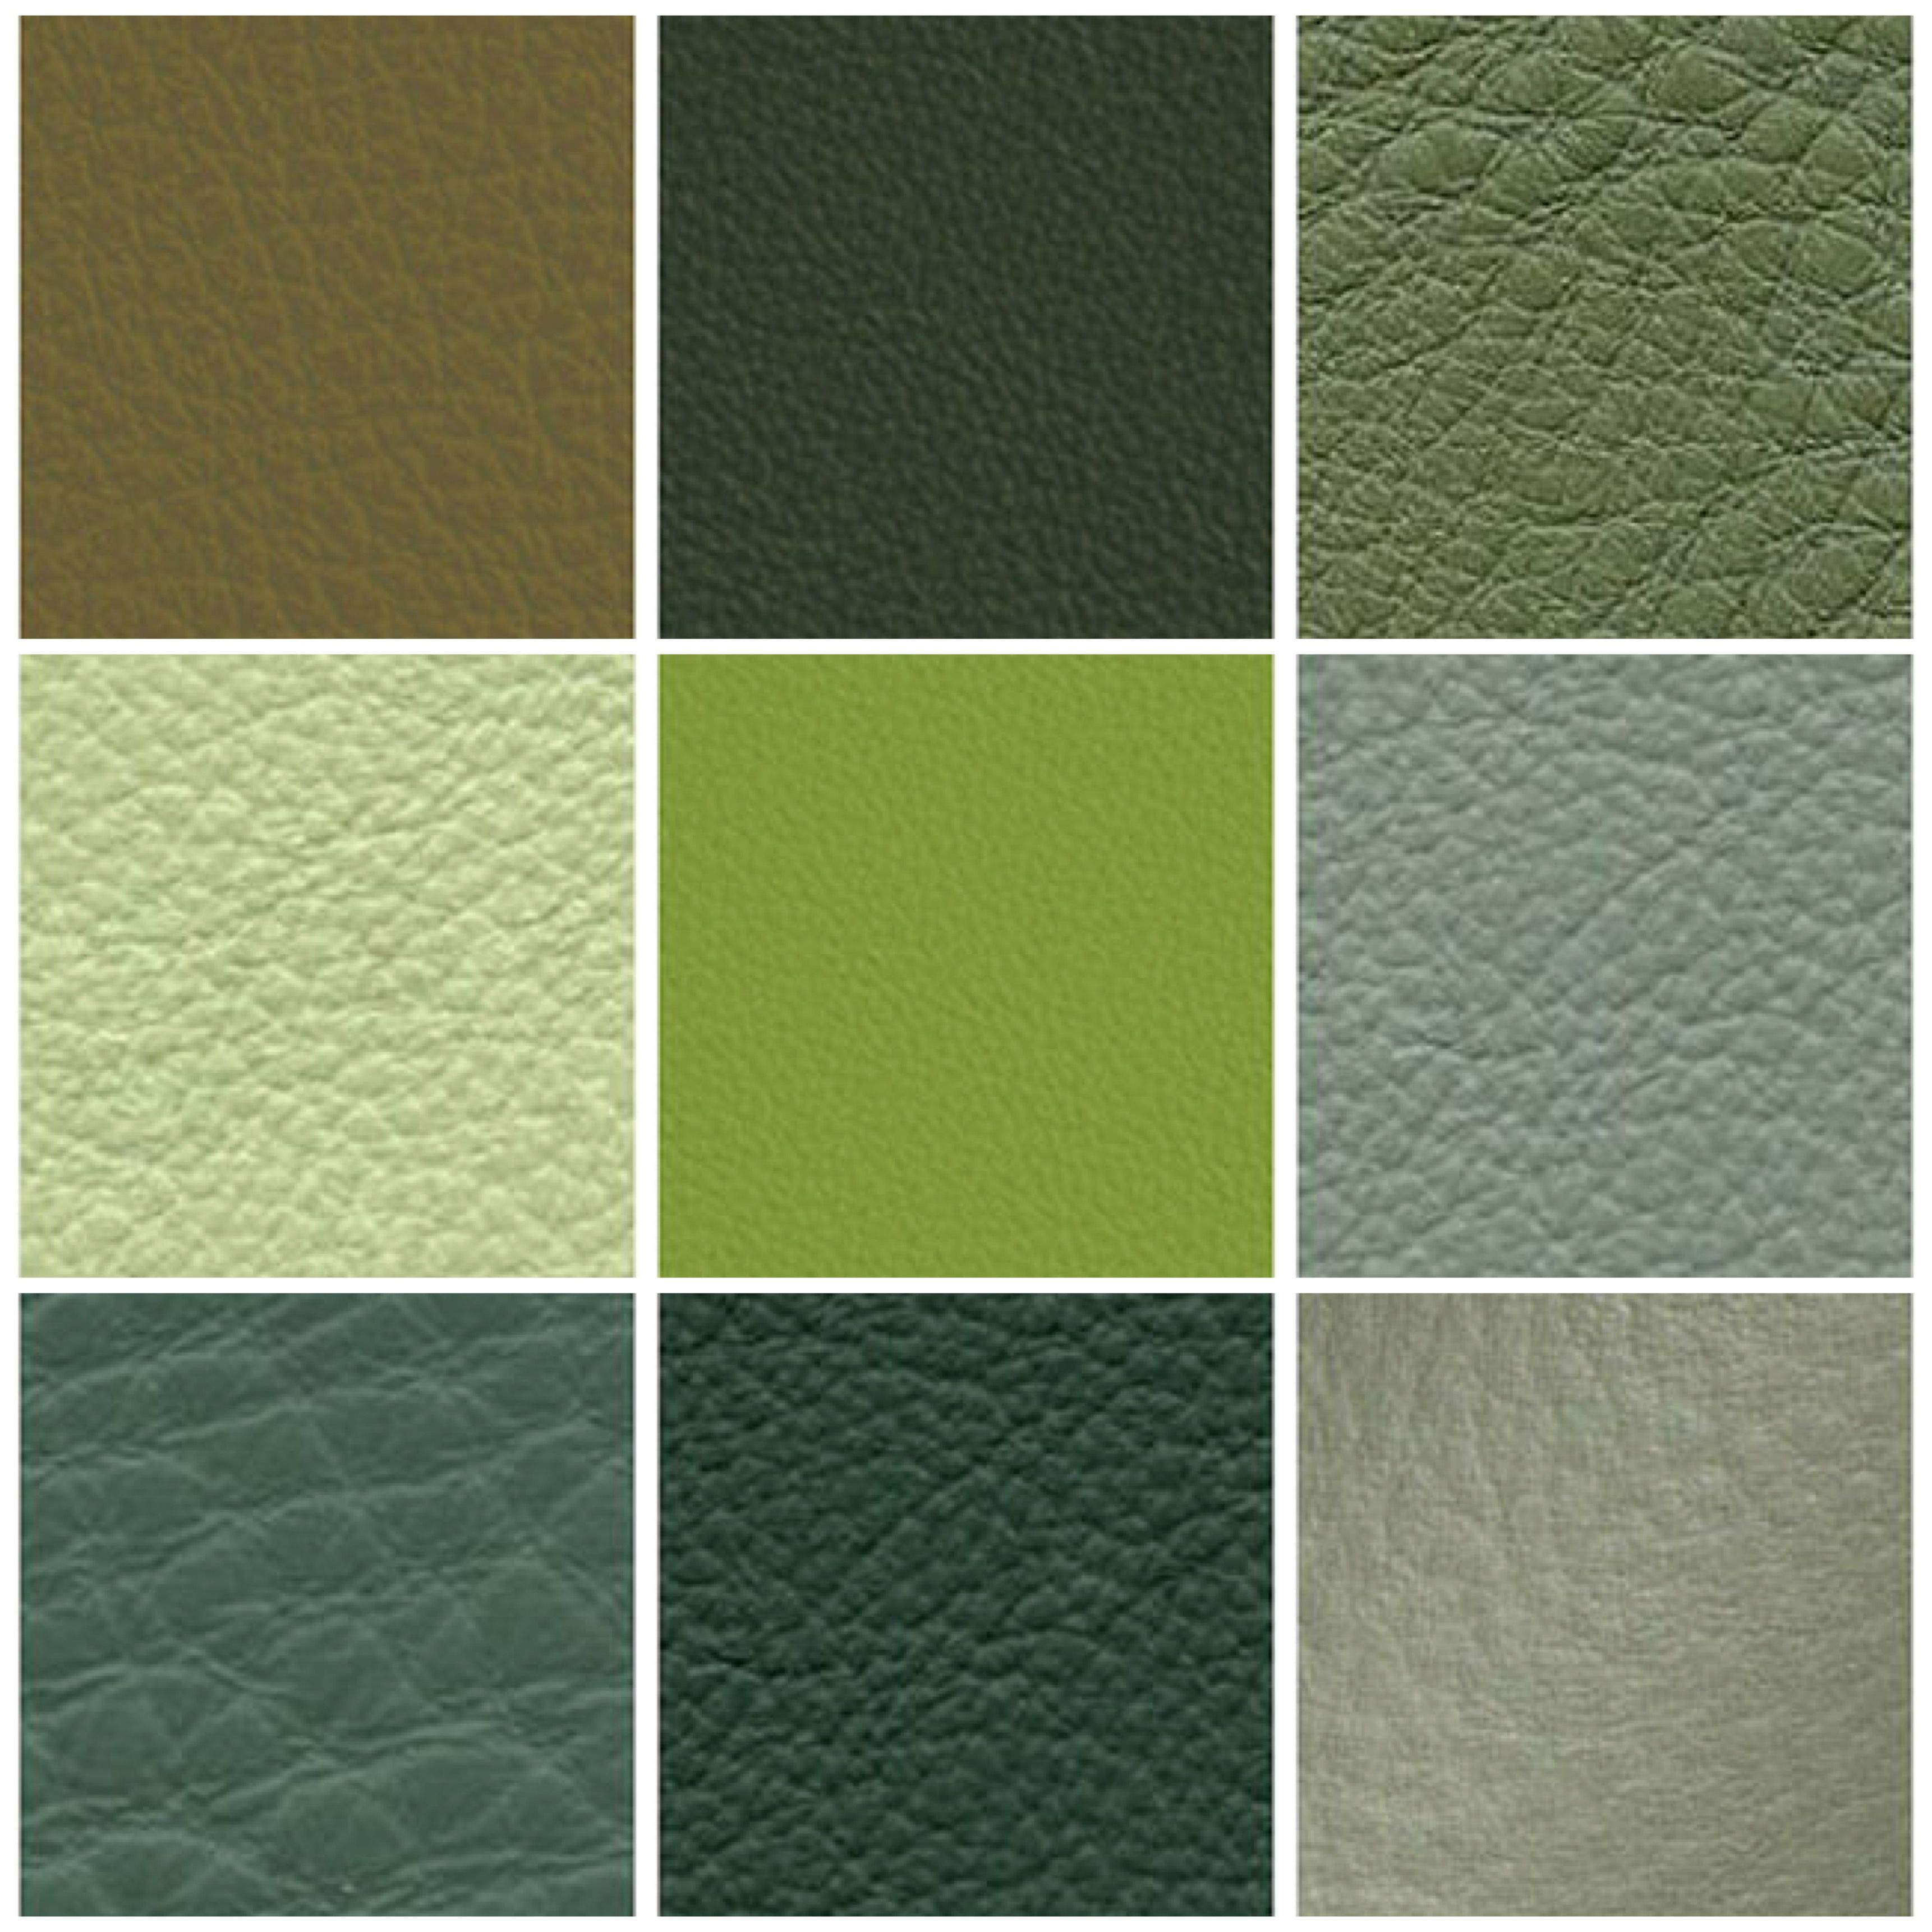 Upholstery Leather We Have 44 Shades Of Blue, Dark Blues,